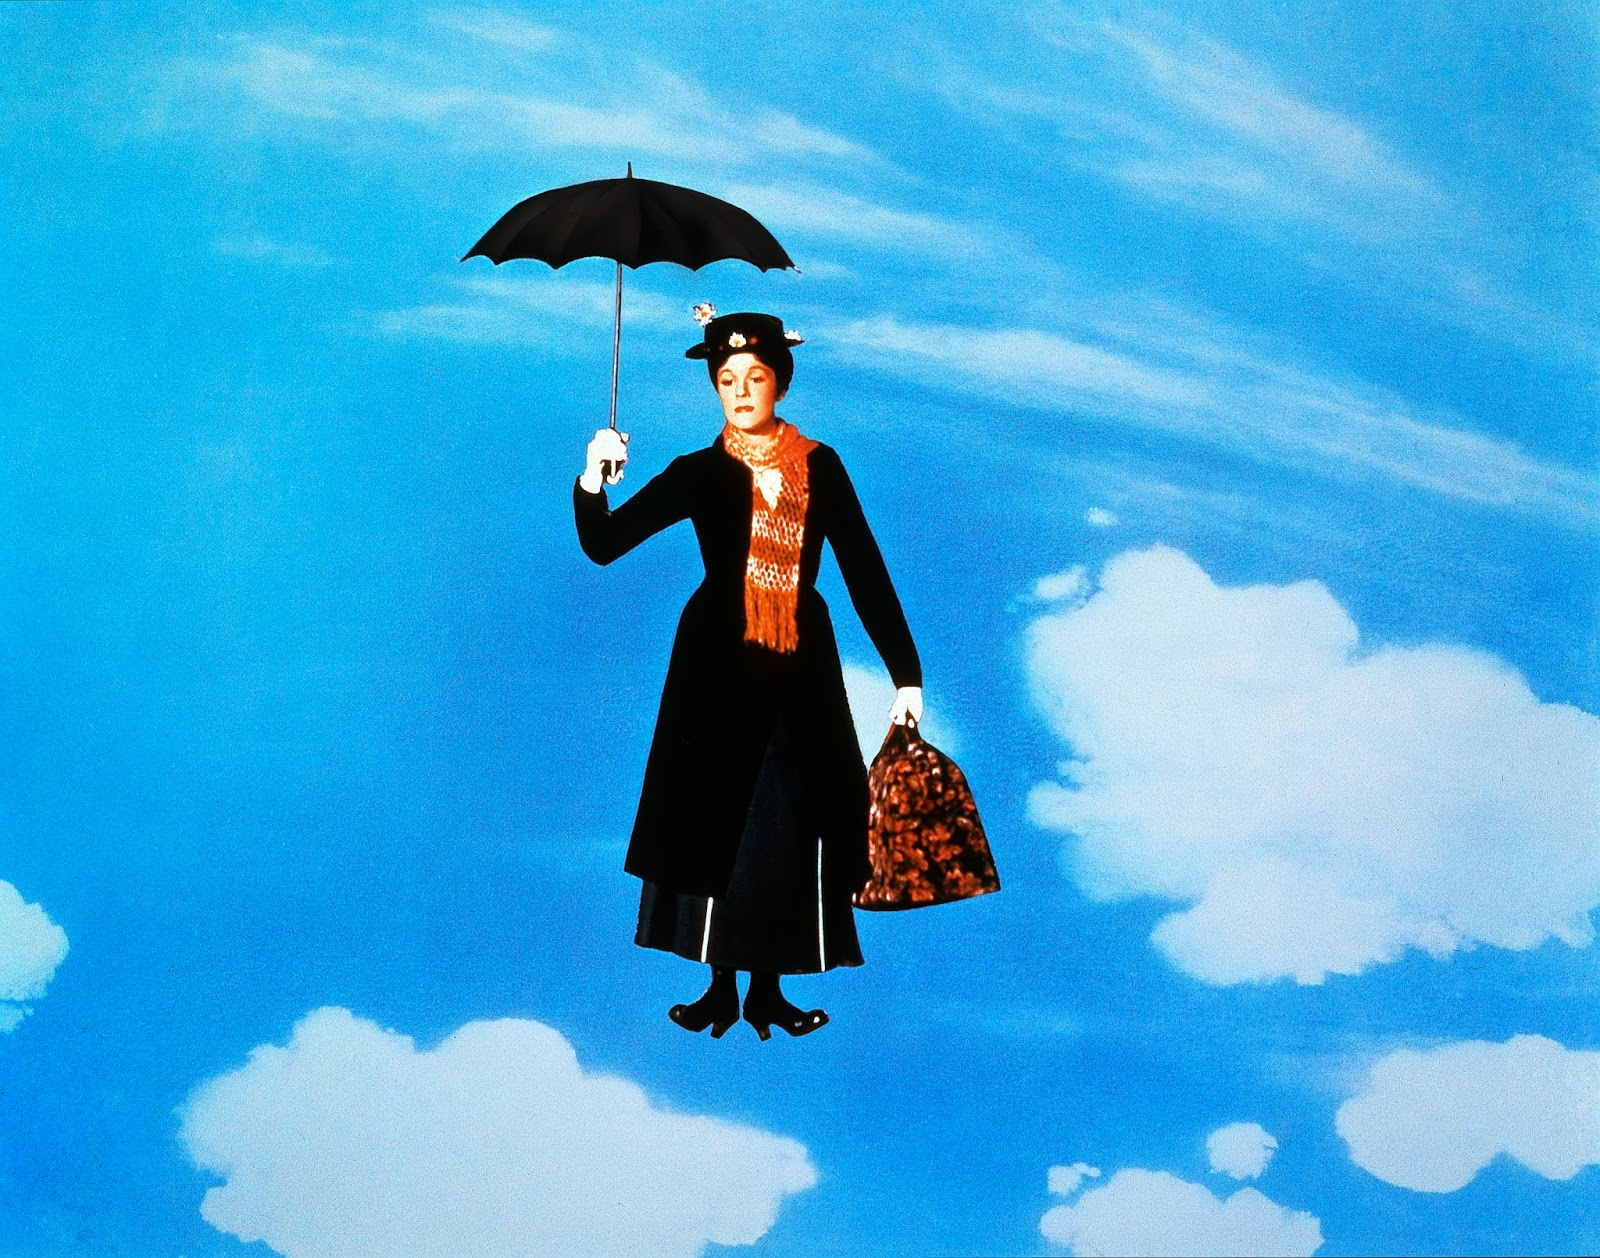 Mary poppins wallpaper and background image 1600x1258 - Mary poppins wallpaper ...